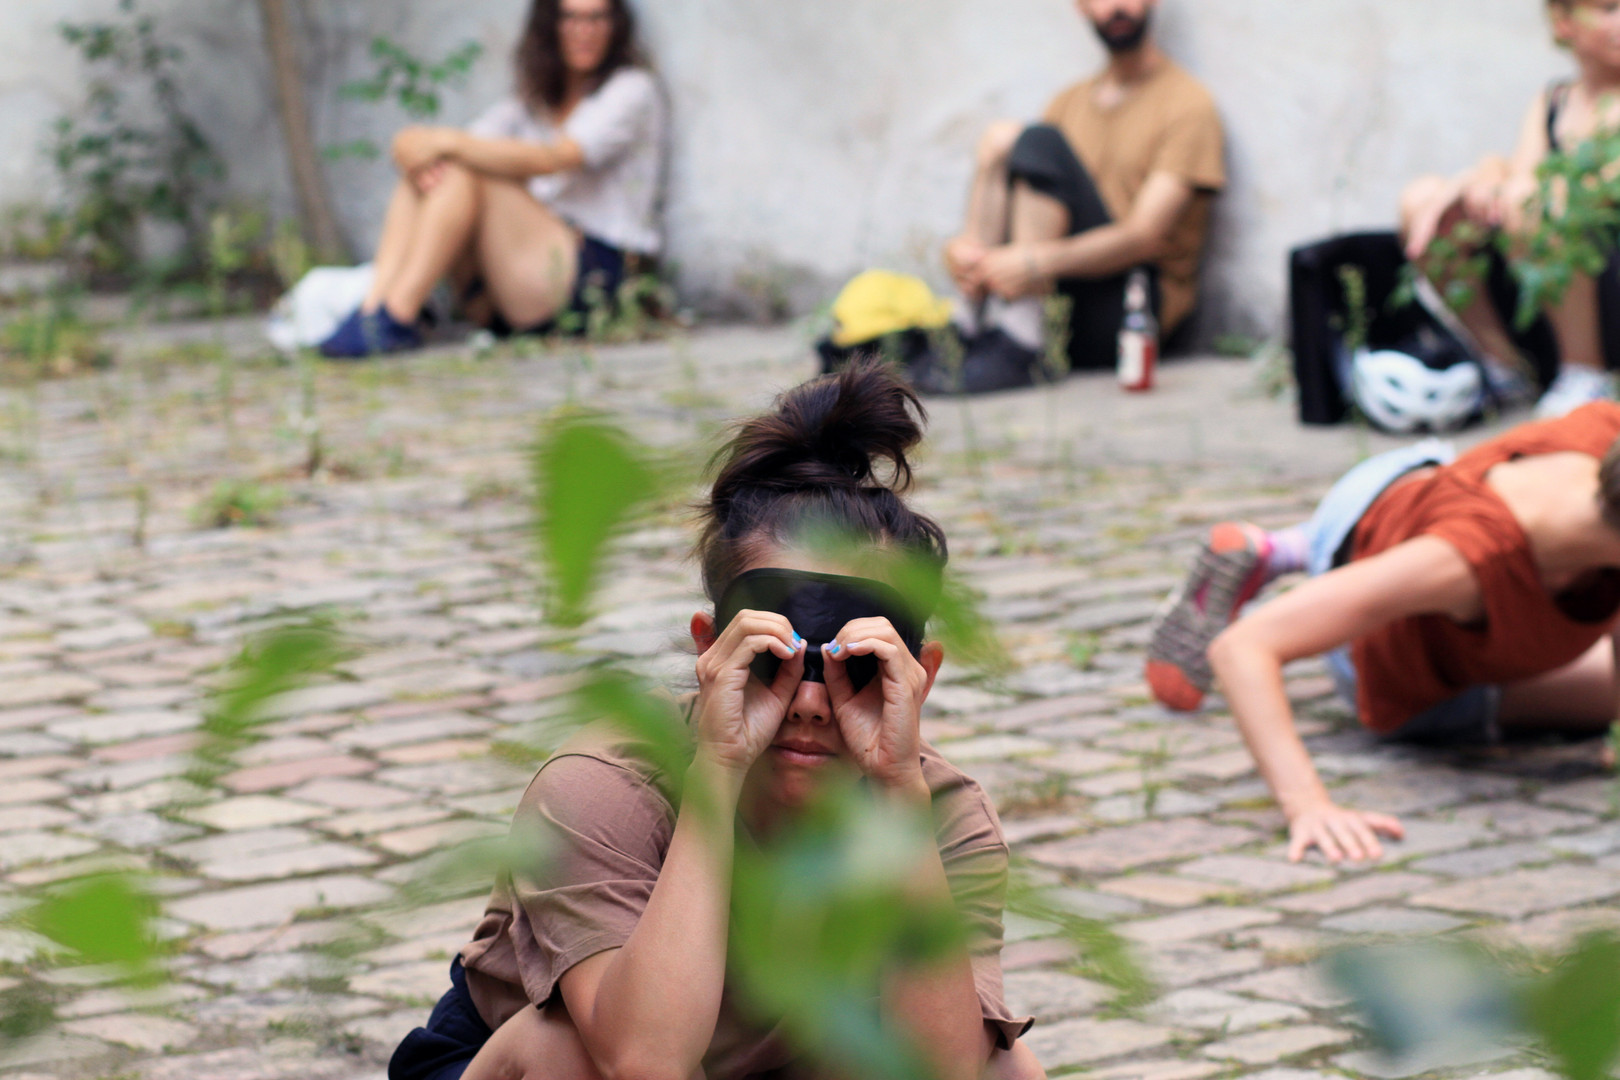 Susi Rosenbohm & Dancers, With Closed Eyes I See More, Performance 15.08.2020 CoNTACT/ HAUNT Berlin © Alana Lake